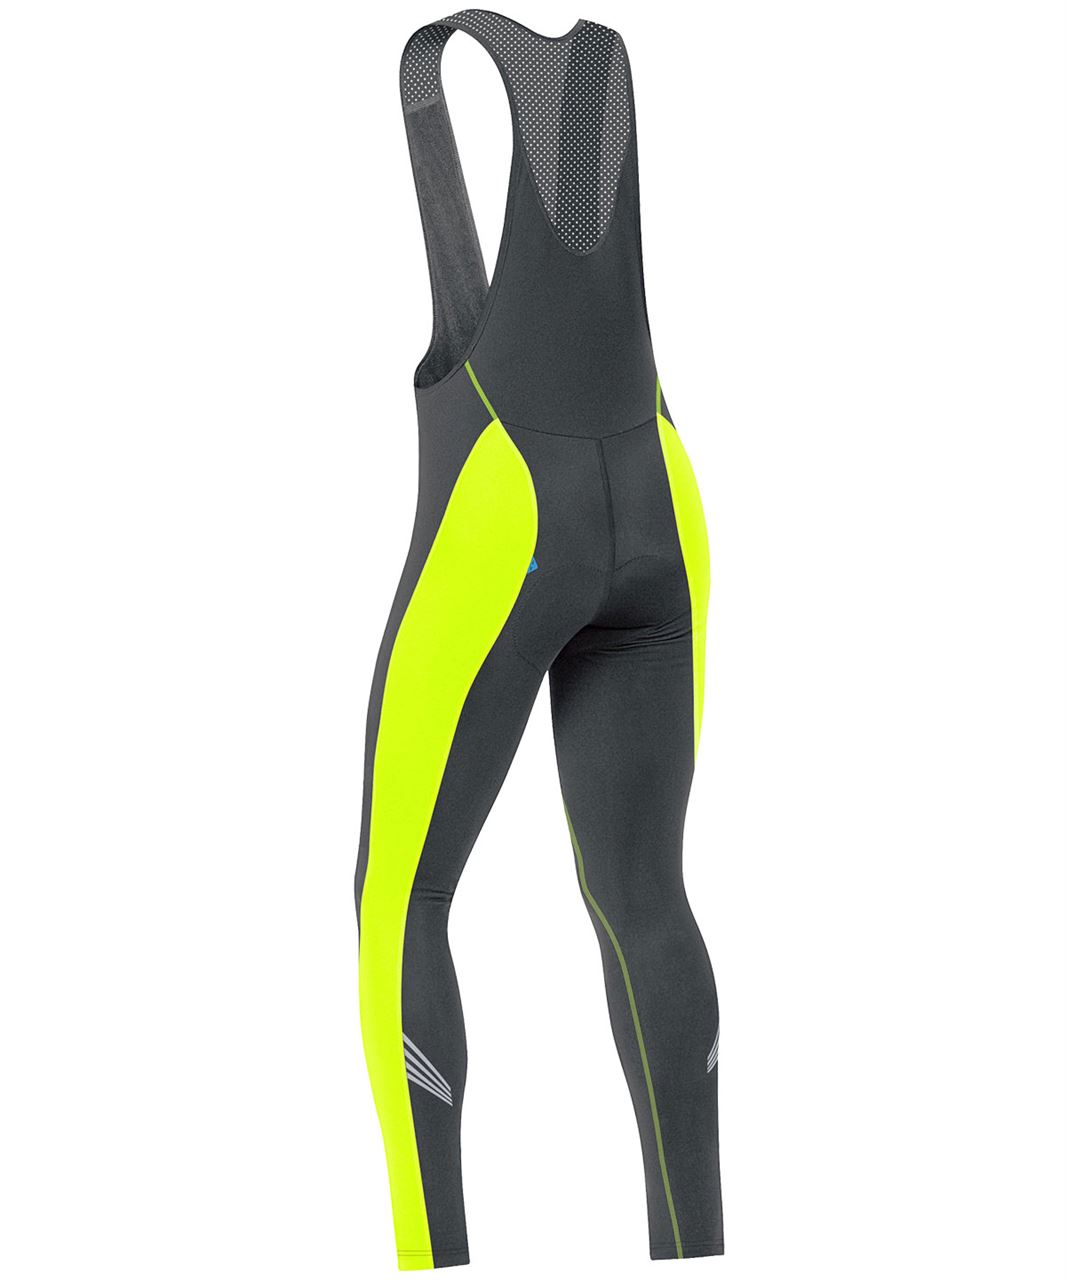 gore c3 thermo bib tights+